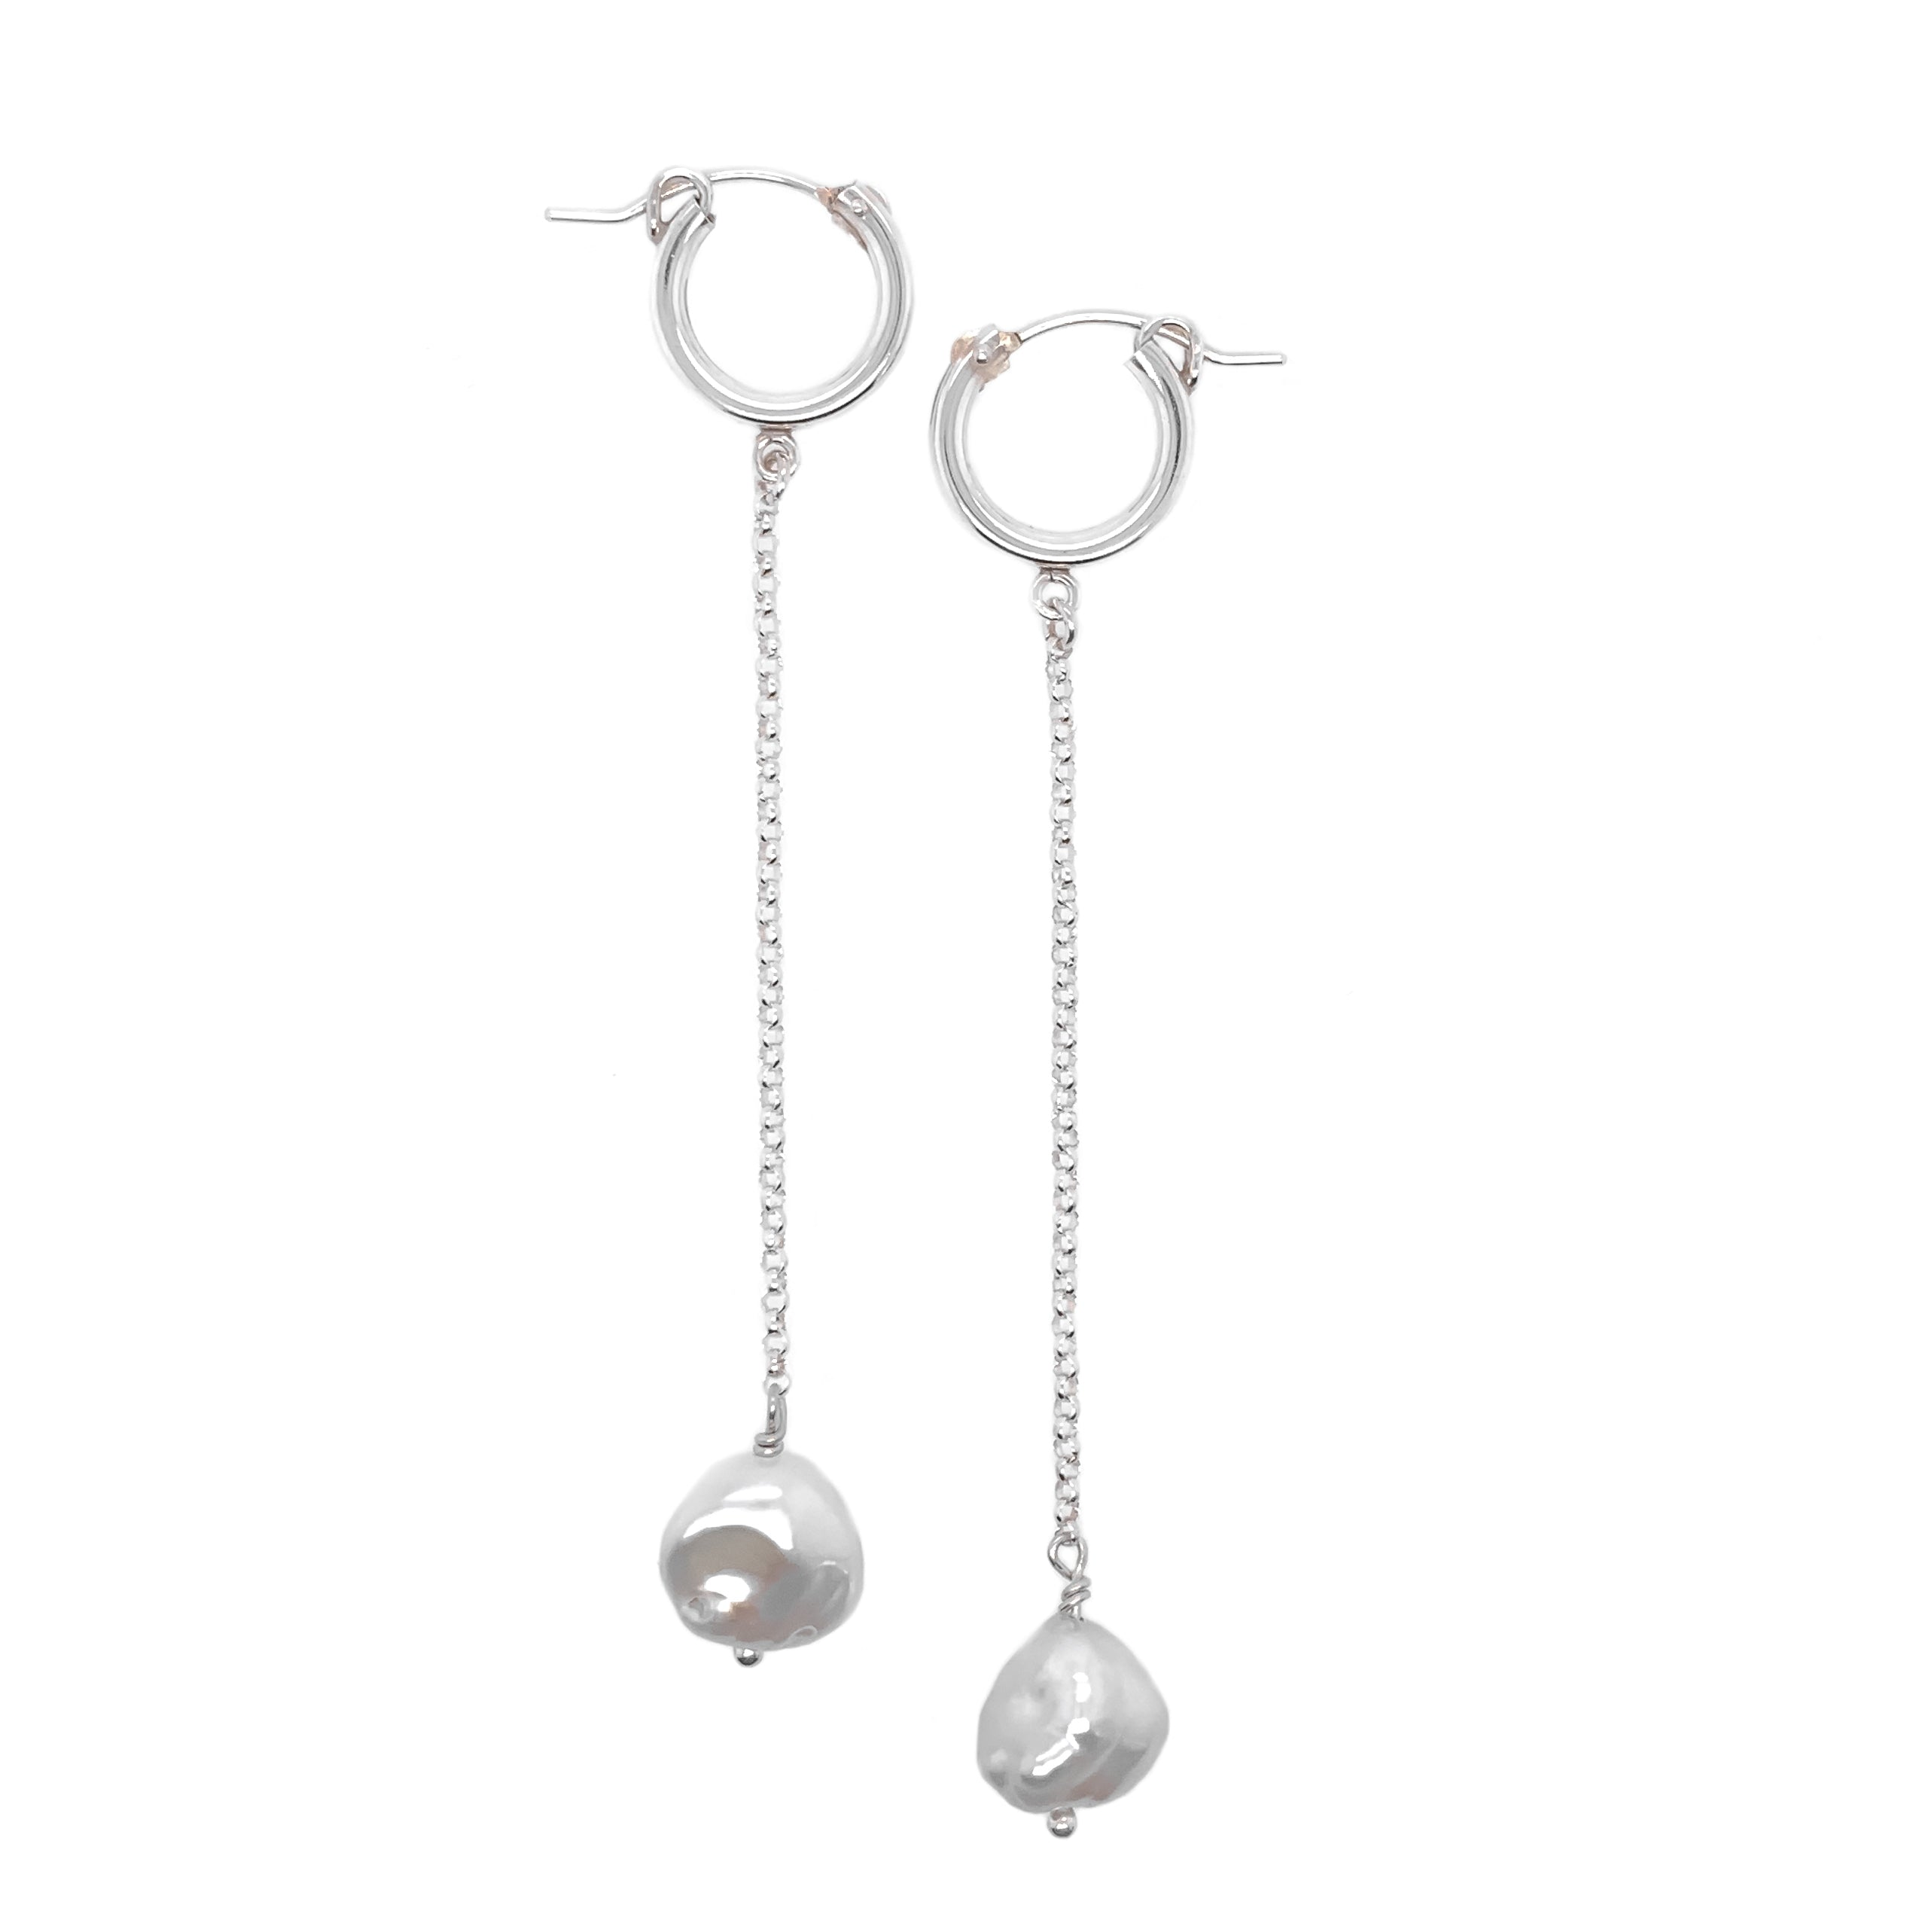 a set of dangly drop earrings with silver hoop closures, a silver drop chain and natural pearls at the bottom shown on a white background